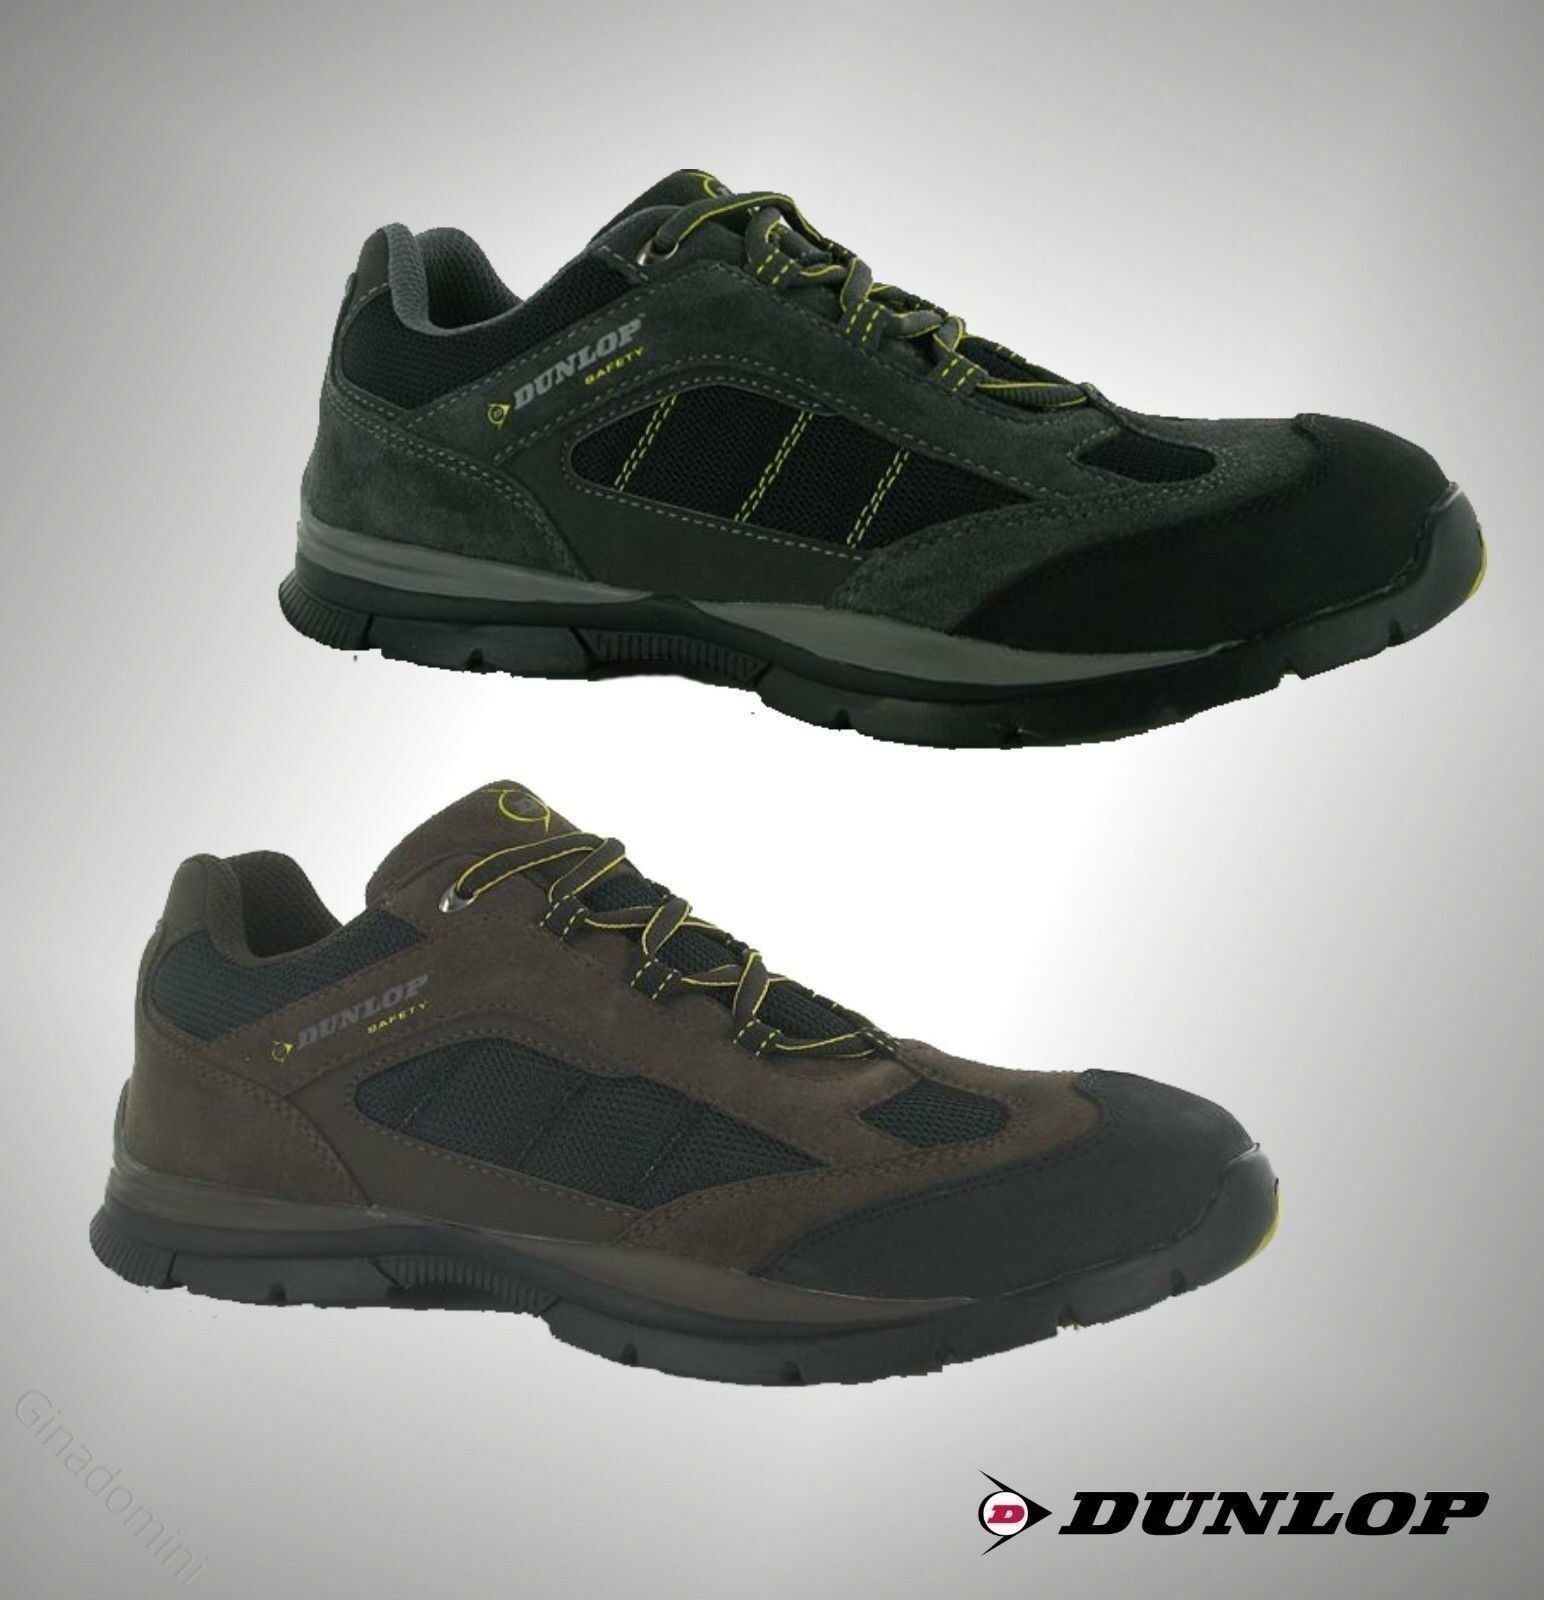 Mens Dunlop Durable Laced Up Safety Lowa schuhe Stiefel Workwear Größes from 6-12